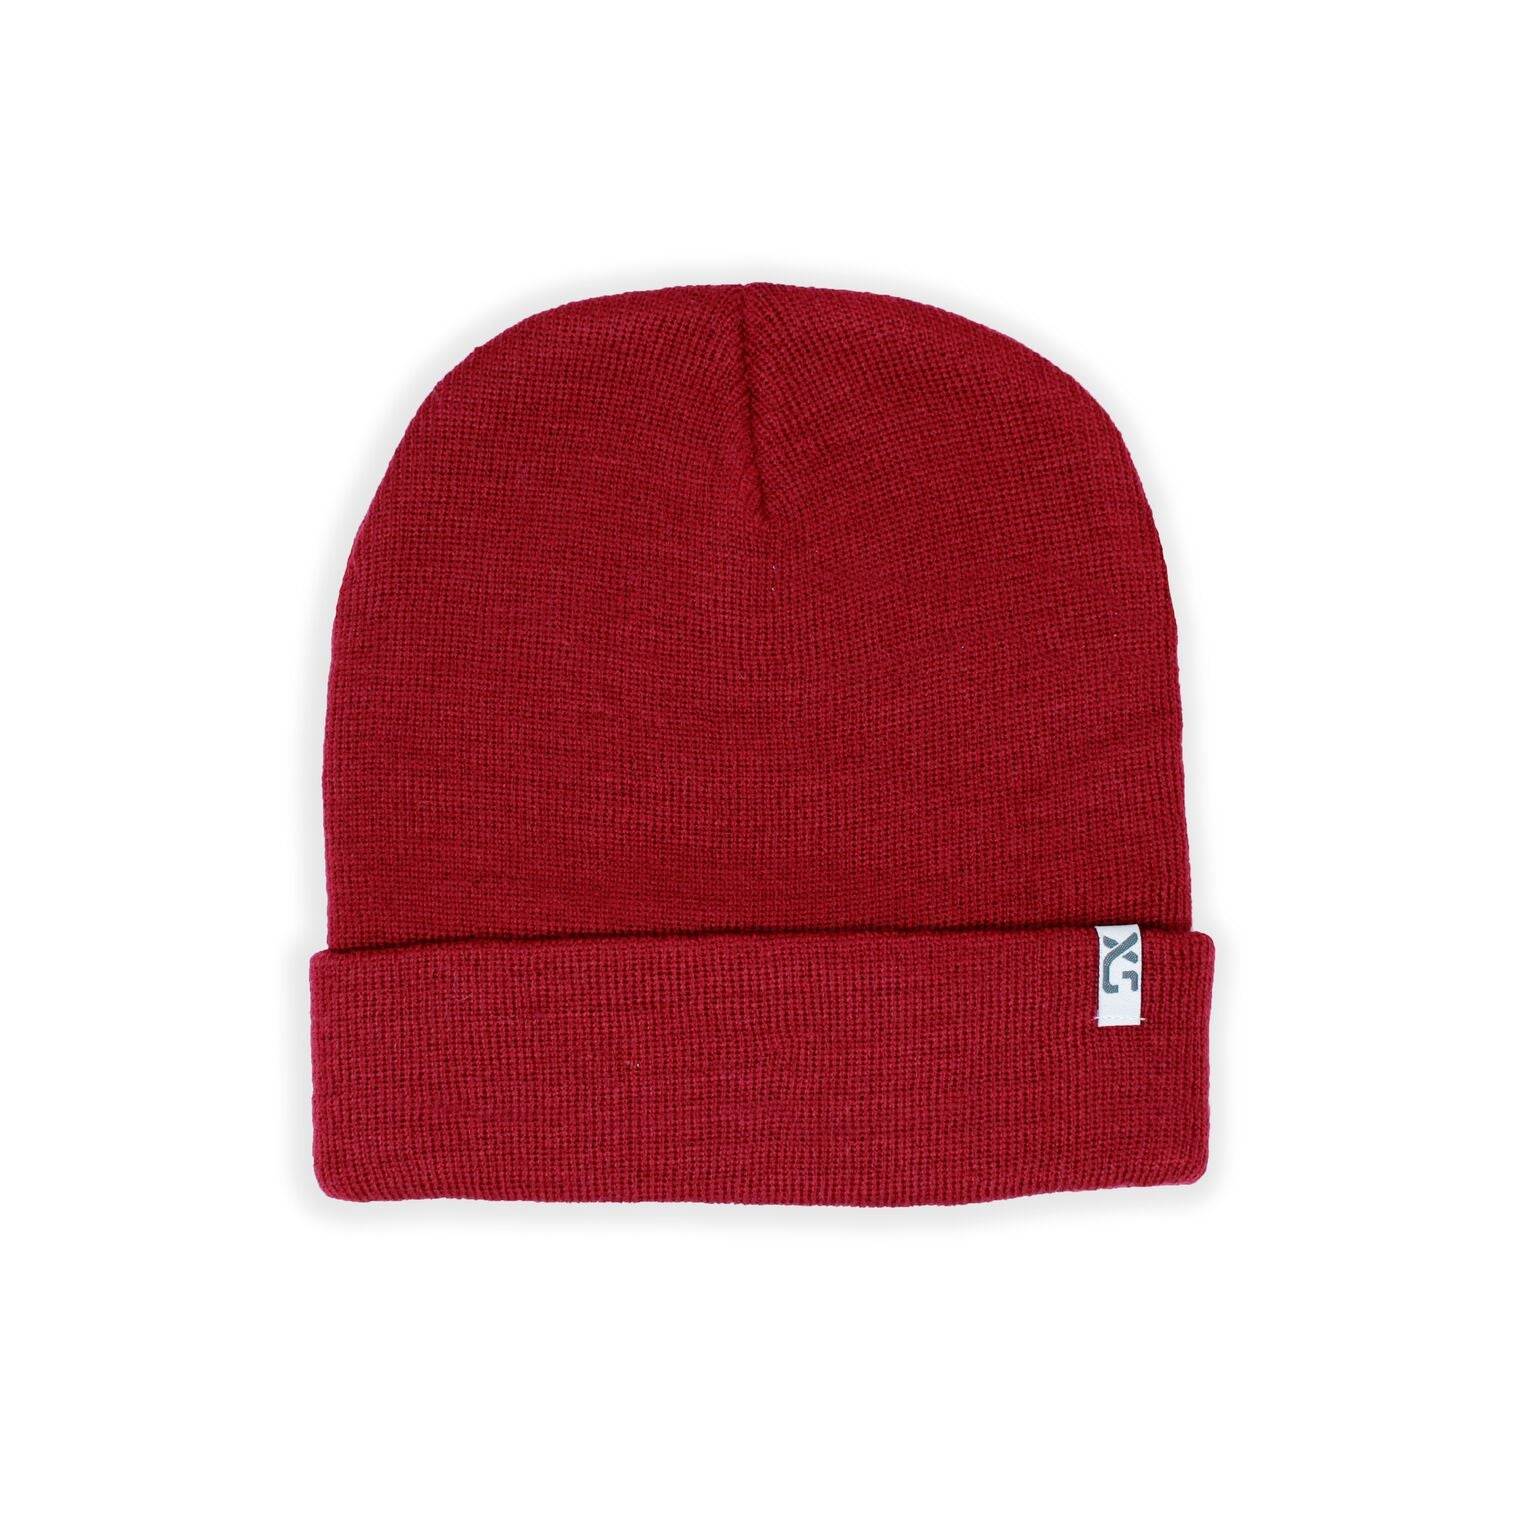 XS Unified Cuffed Beanie - Crimson